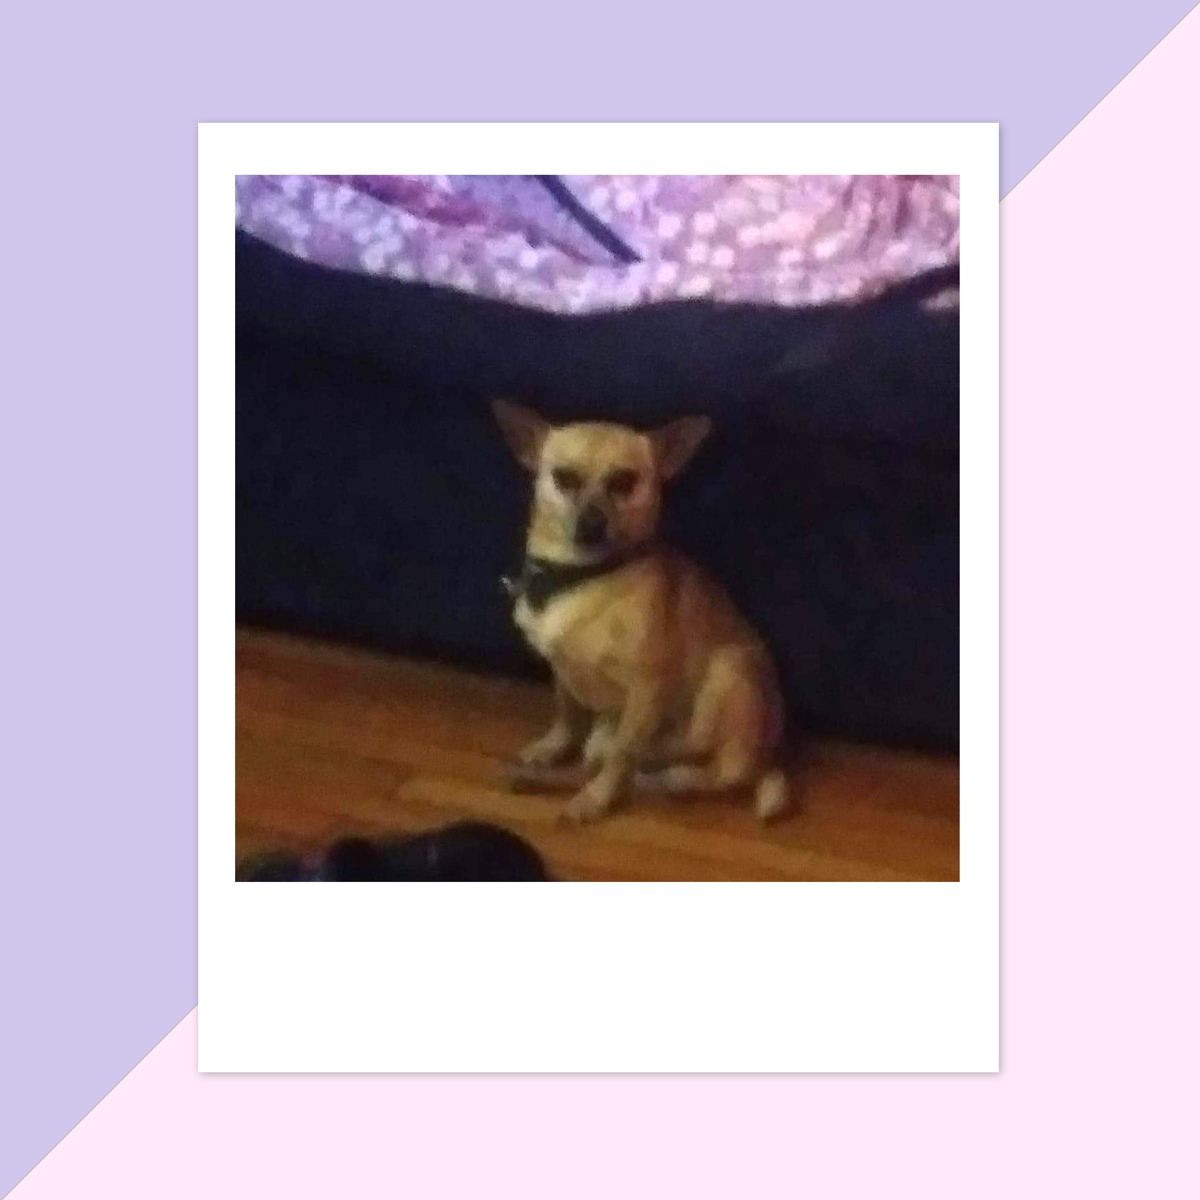 Debra A. in San Antonio sent a picture of her furry and funny friend, Max. Max is a pure Chihuahua, and he is 3 years old.